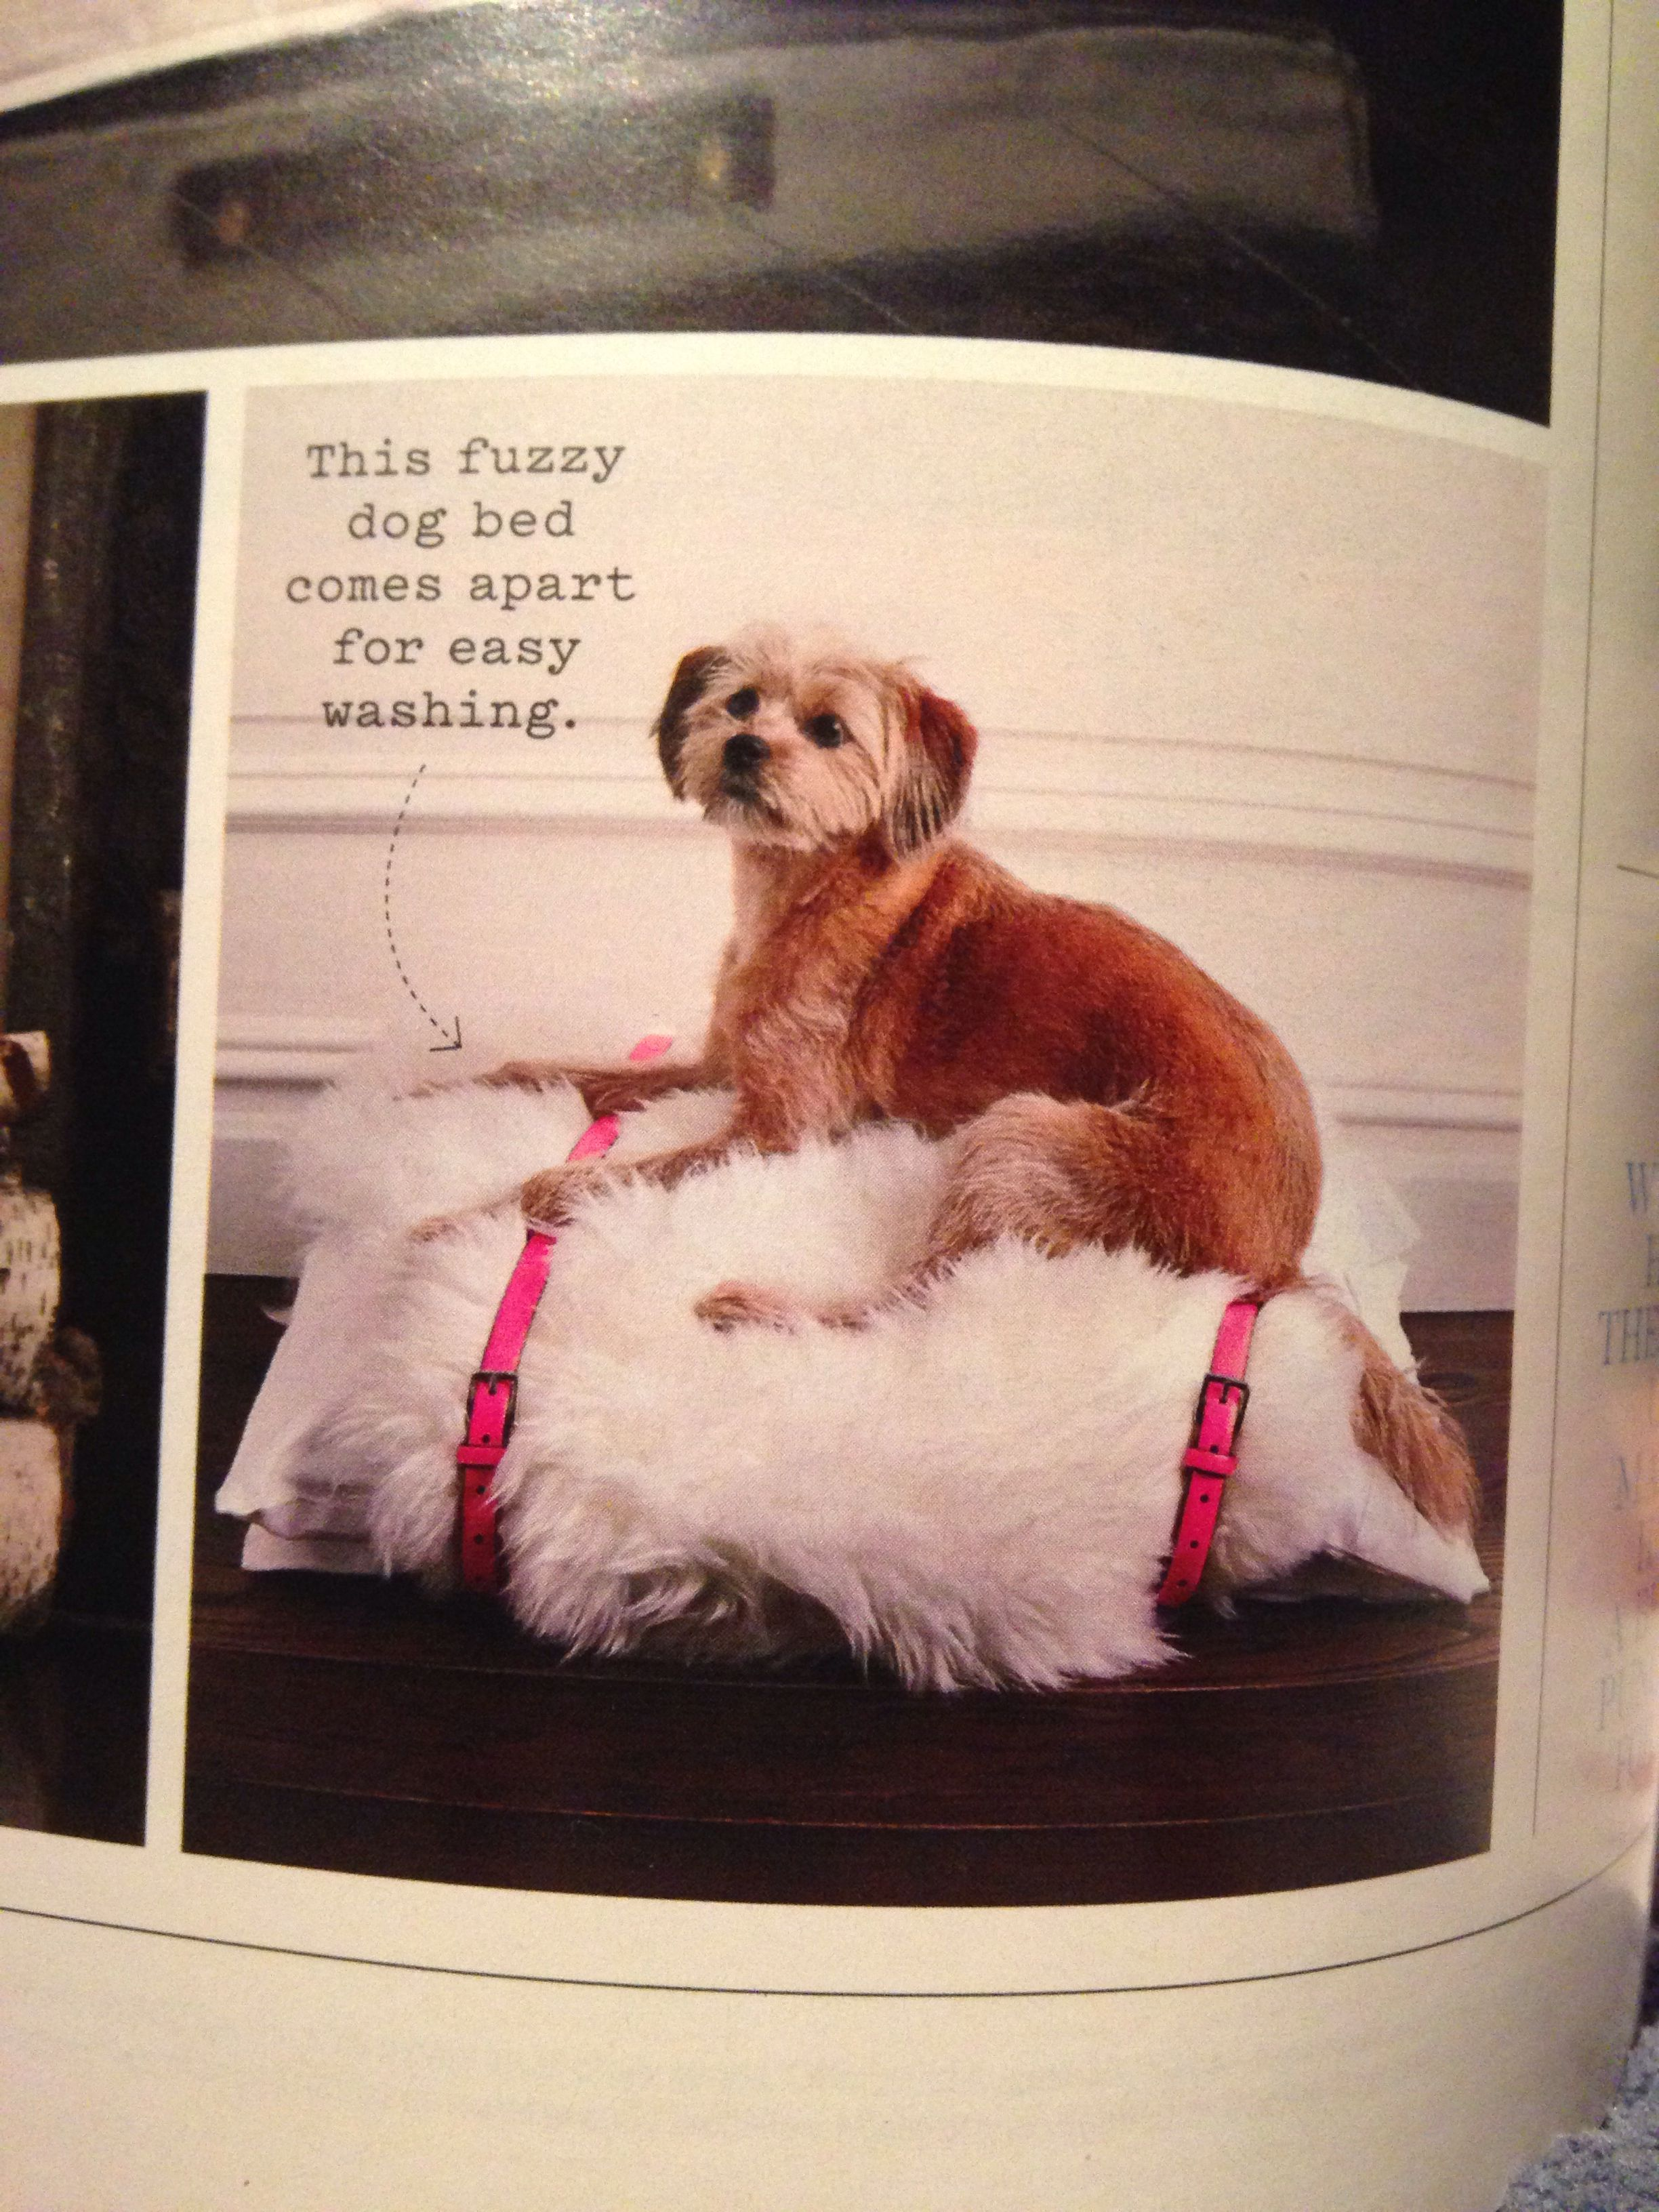 To Make A Dog Bed Wrap One Or Two Standard Bedroom Pillows With Faux Sheepskin Rugdog